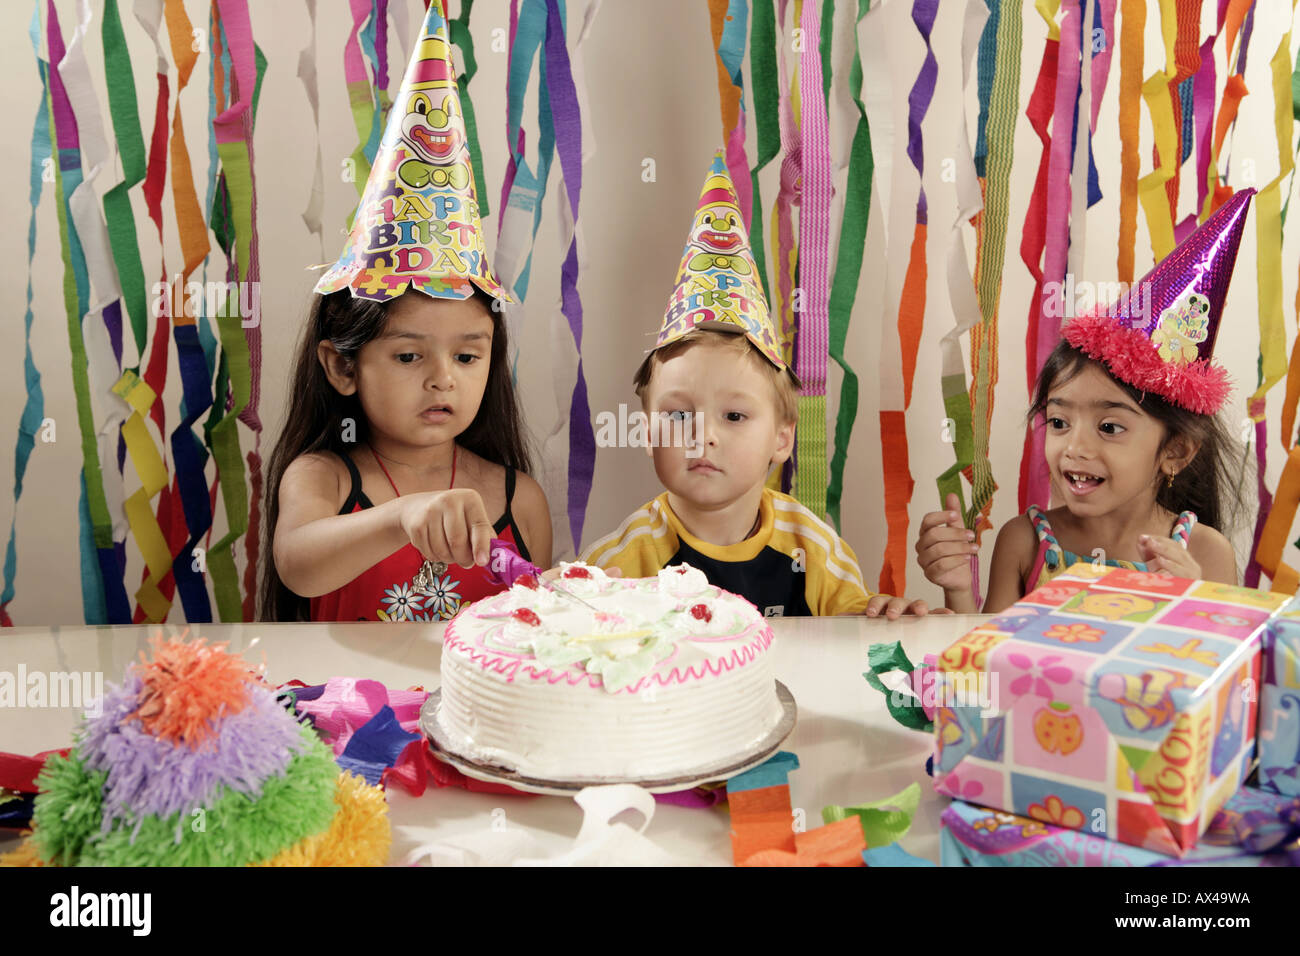 Girl Cutting Cake In A Birthday Party